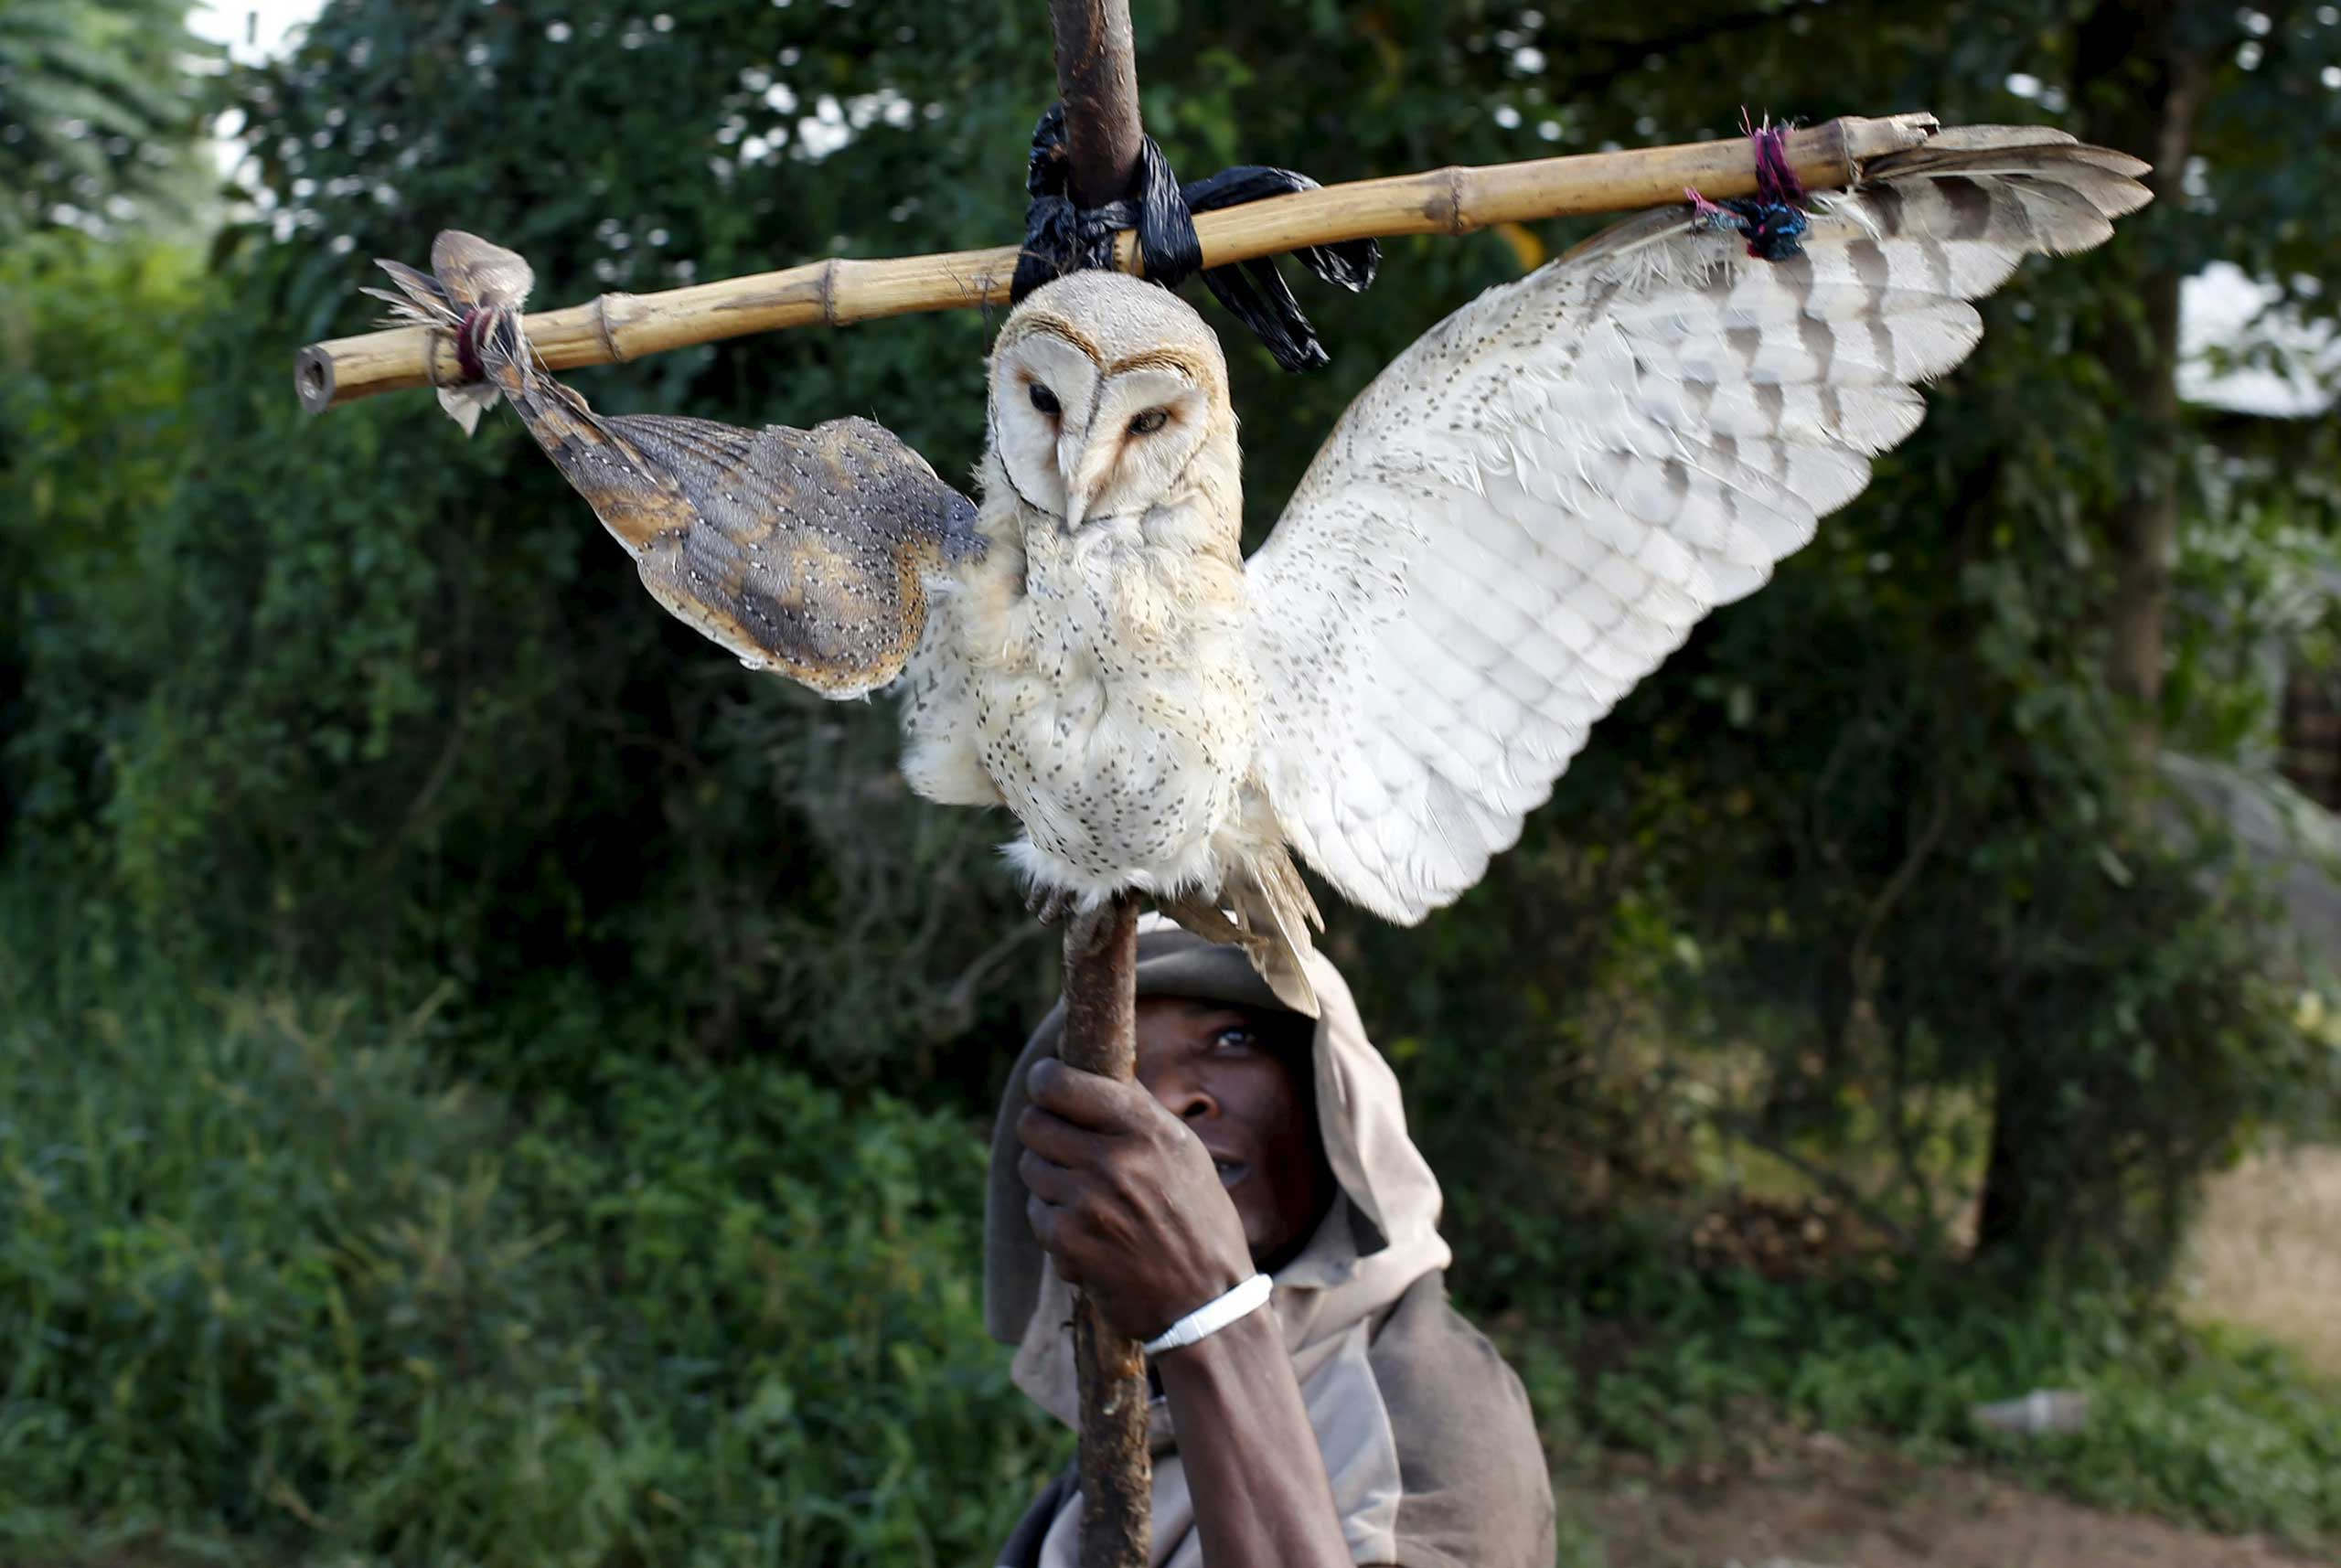 A protestor holds up a dead owl attached to a stick, intended to denigrate the ruling party whose emblem is an eagle, during a protest in Buterere neighbourhood of Bujumbura, Burundi on May 12, 2015.